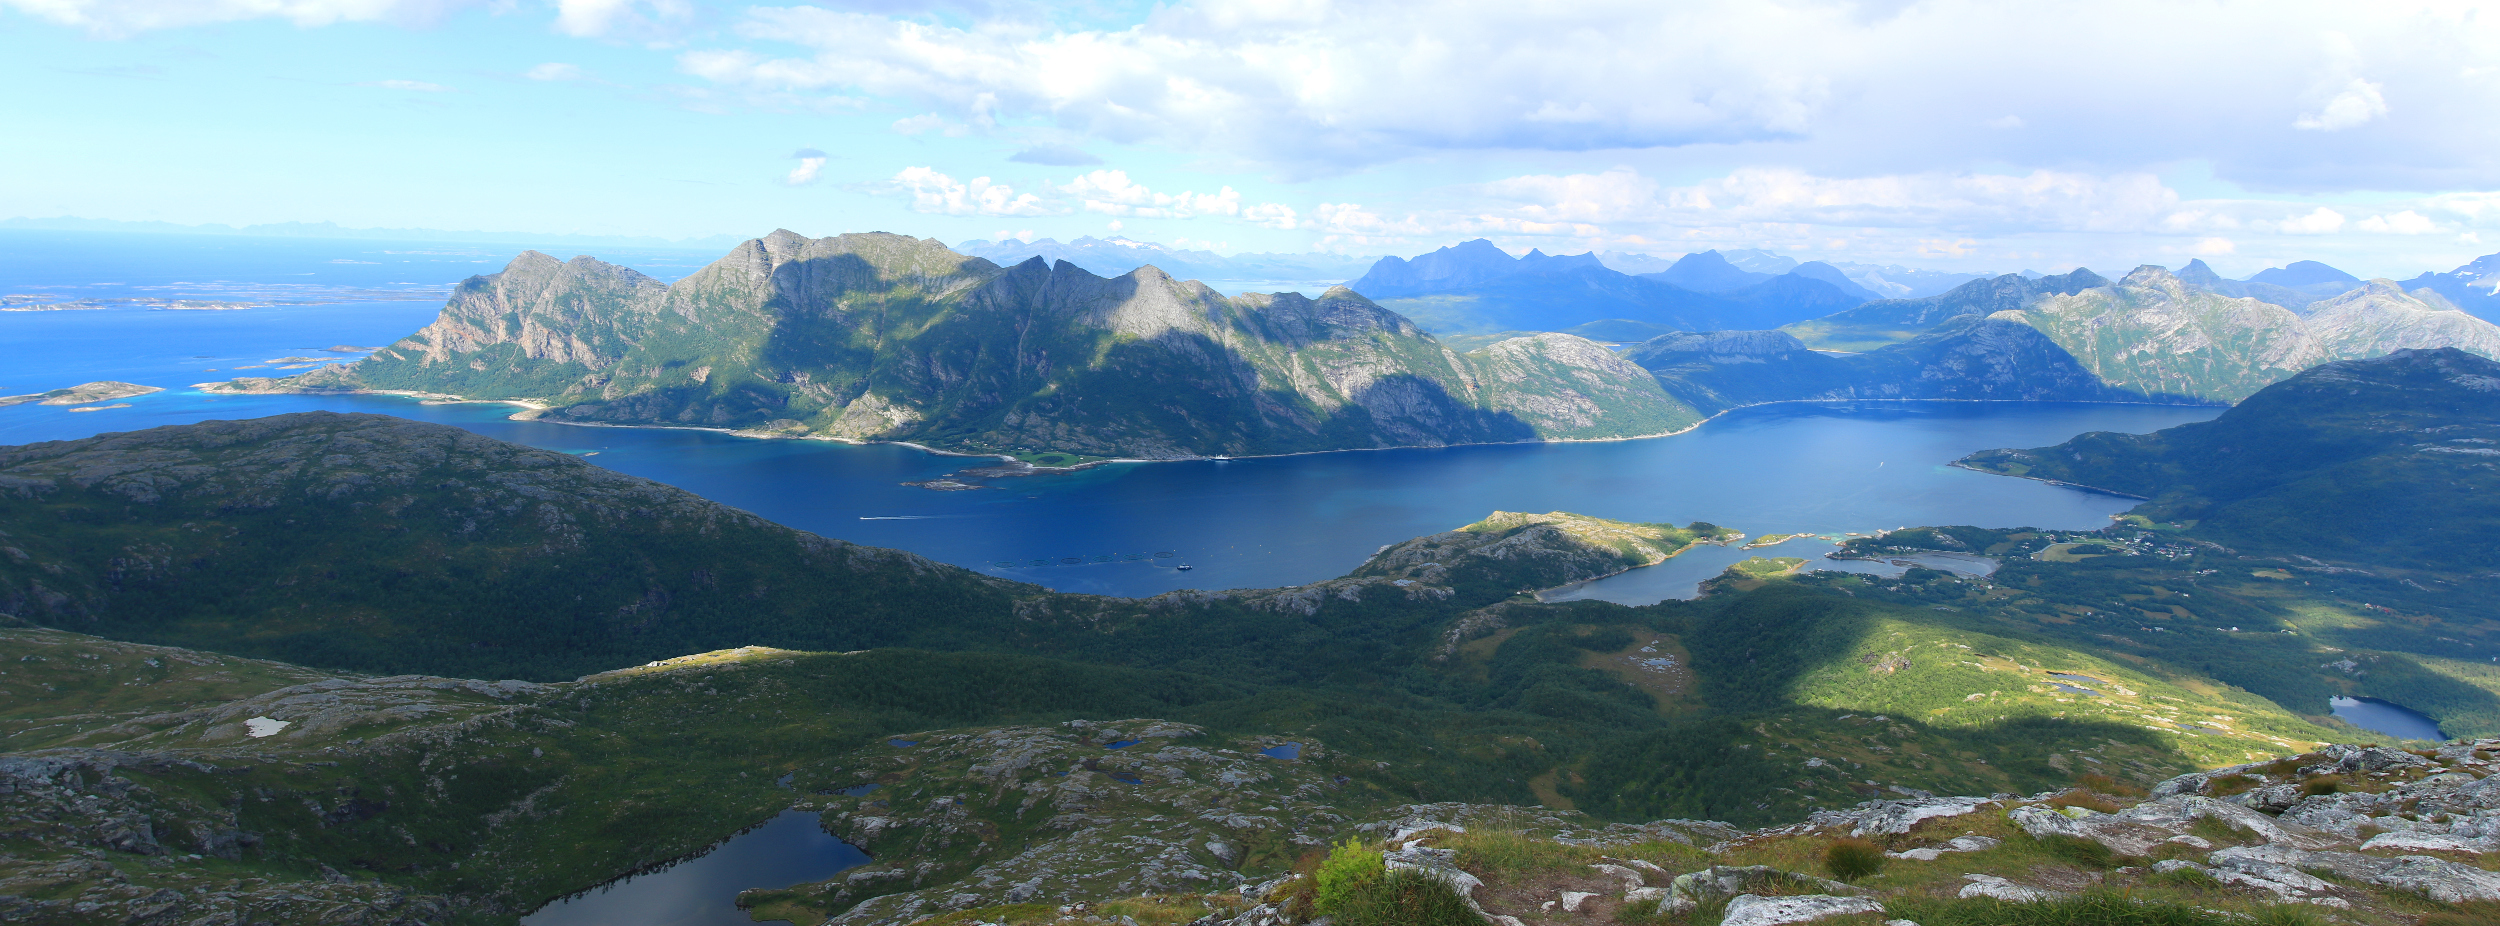 Norwegian Panorama Landscape photo af mountain and ocean